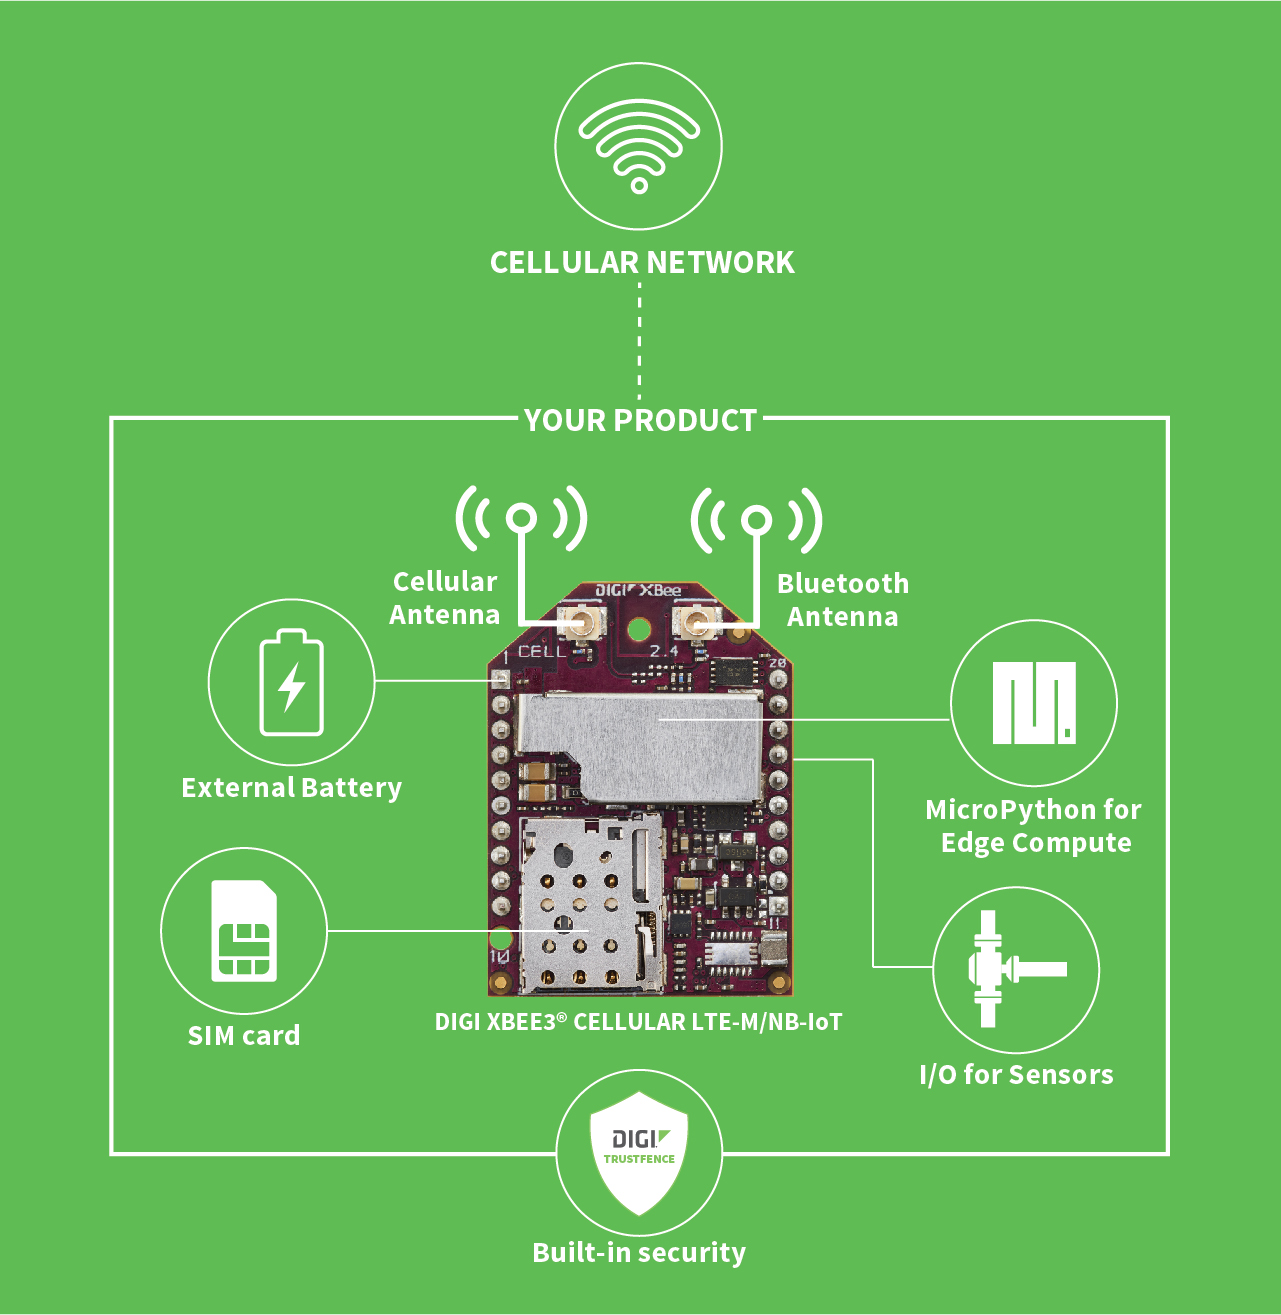 Managing power in the IoT with cellular LPWAN technology